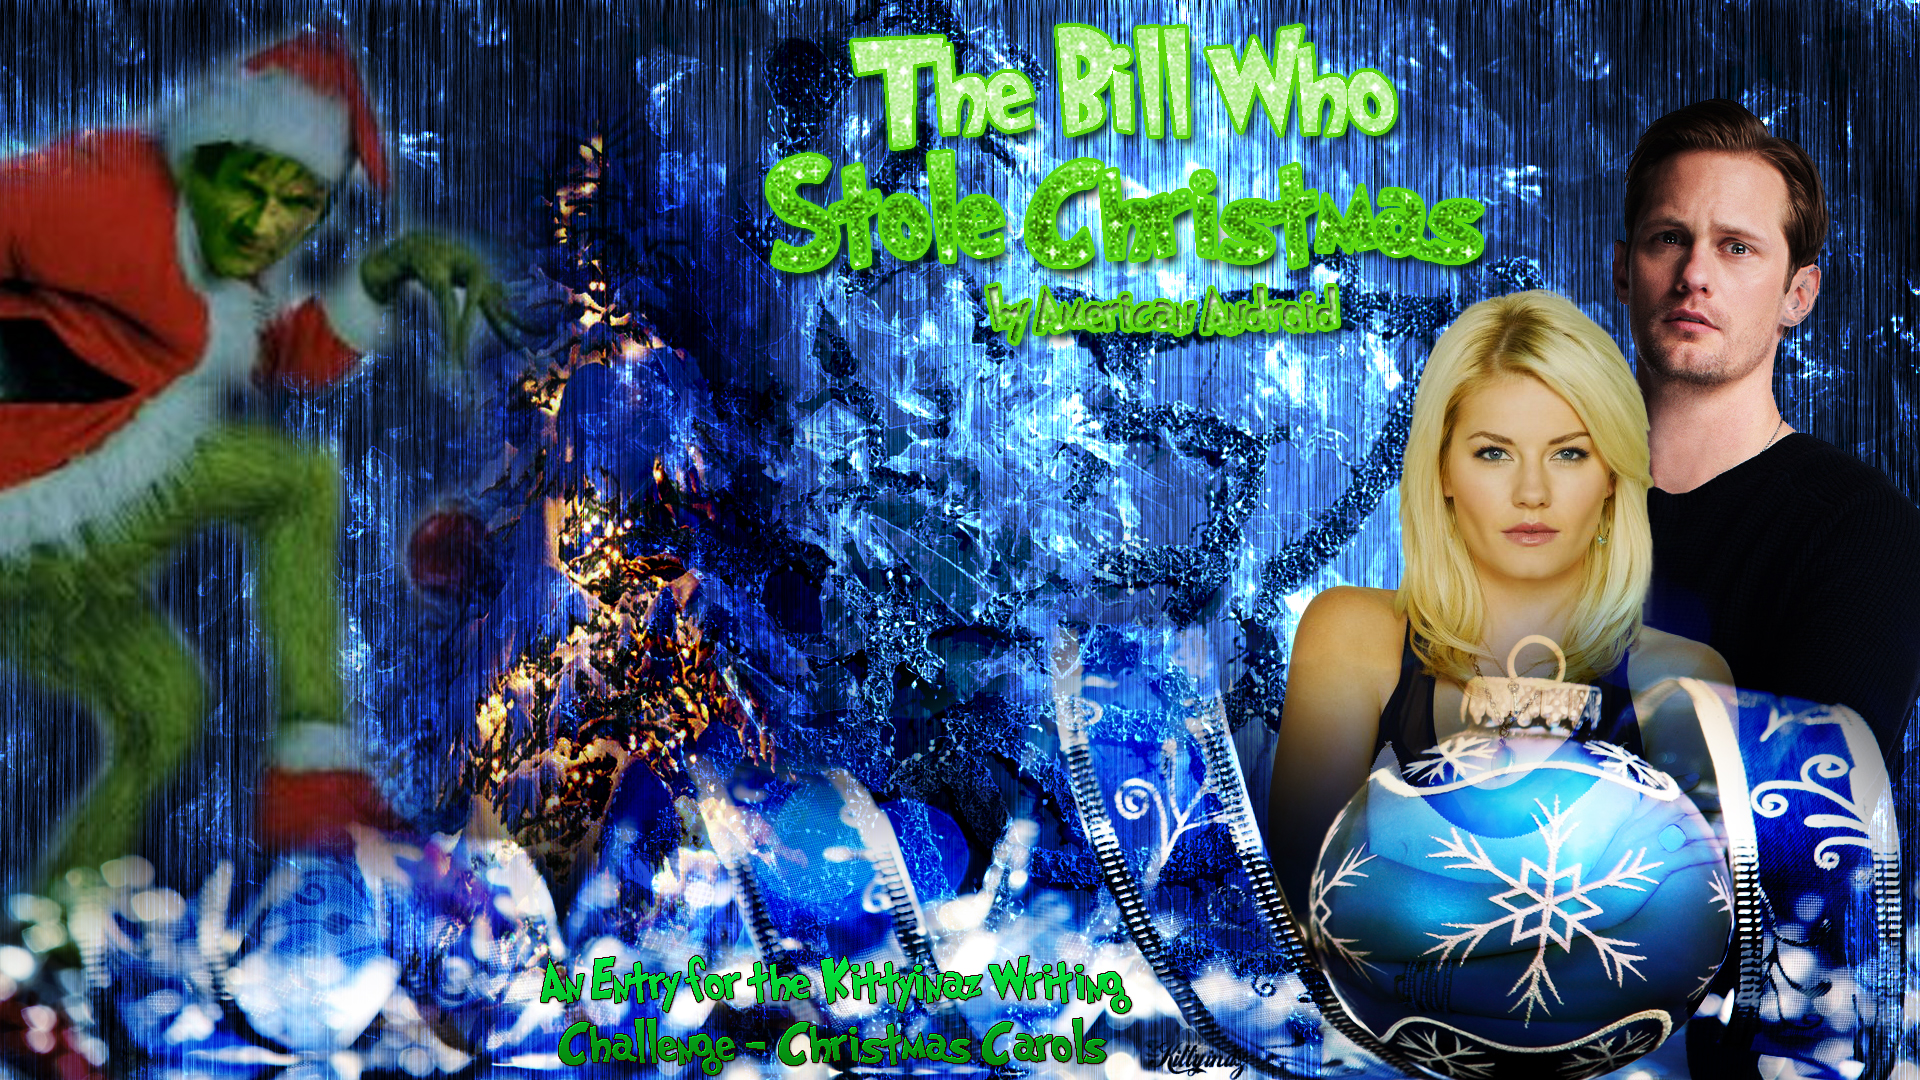 The-Bill-Who-Stole-Christmas-American-Android